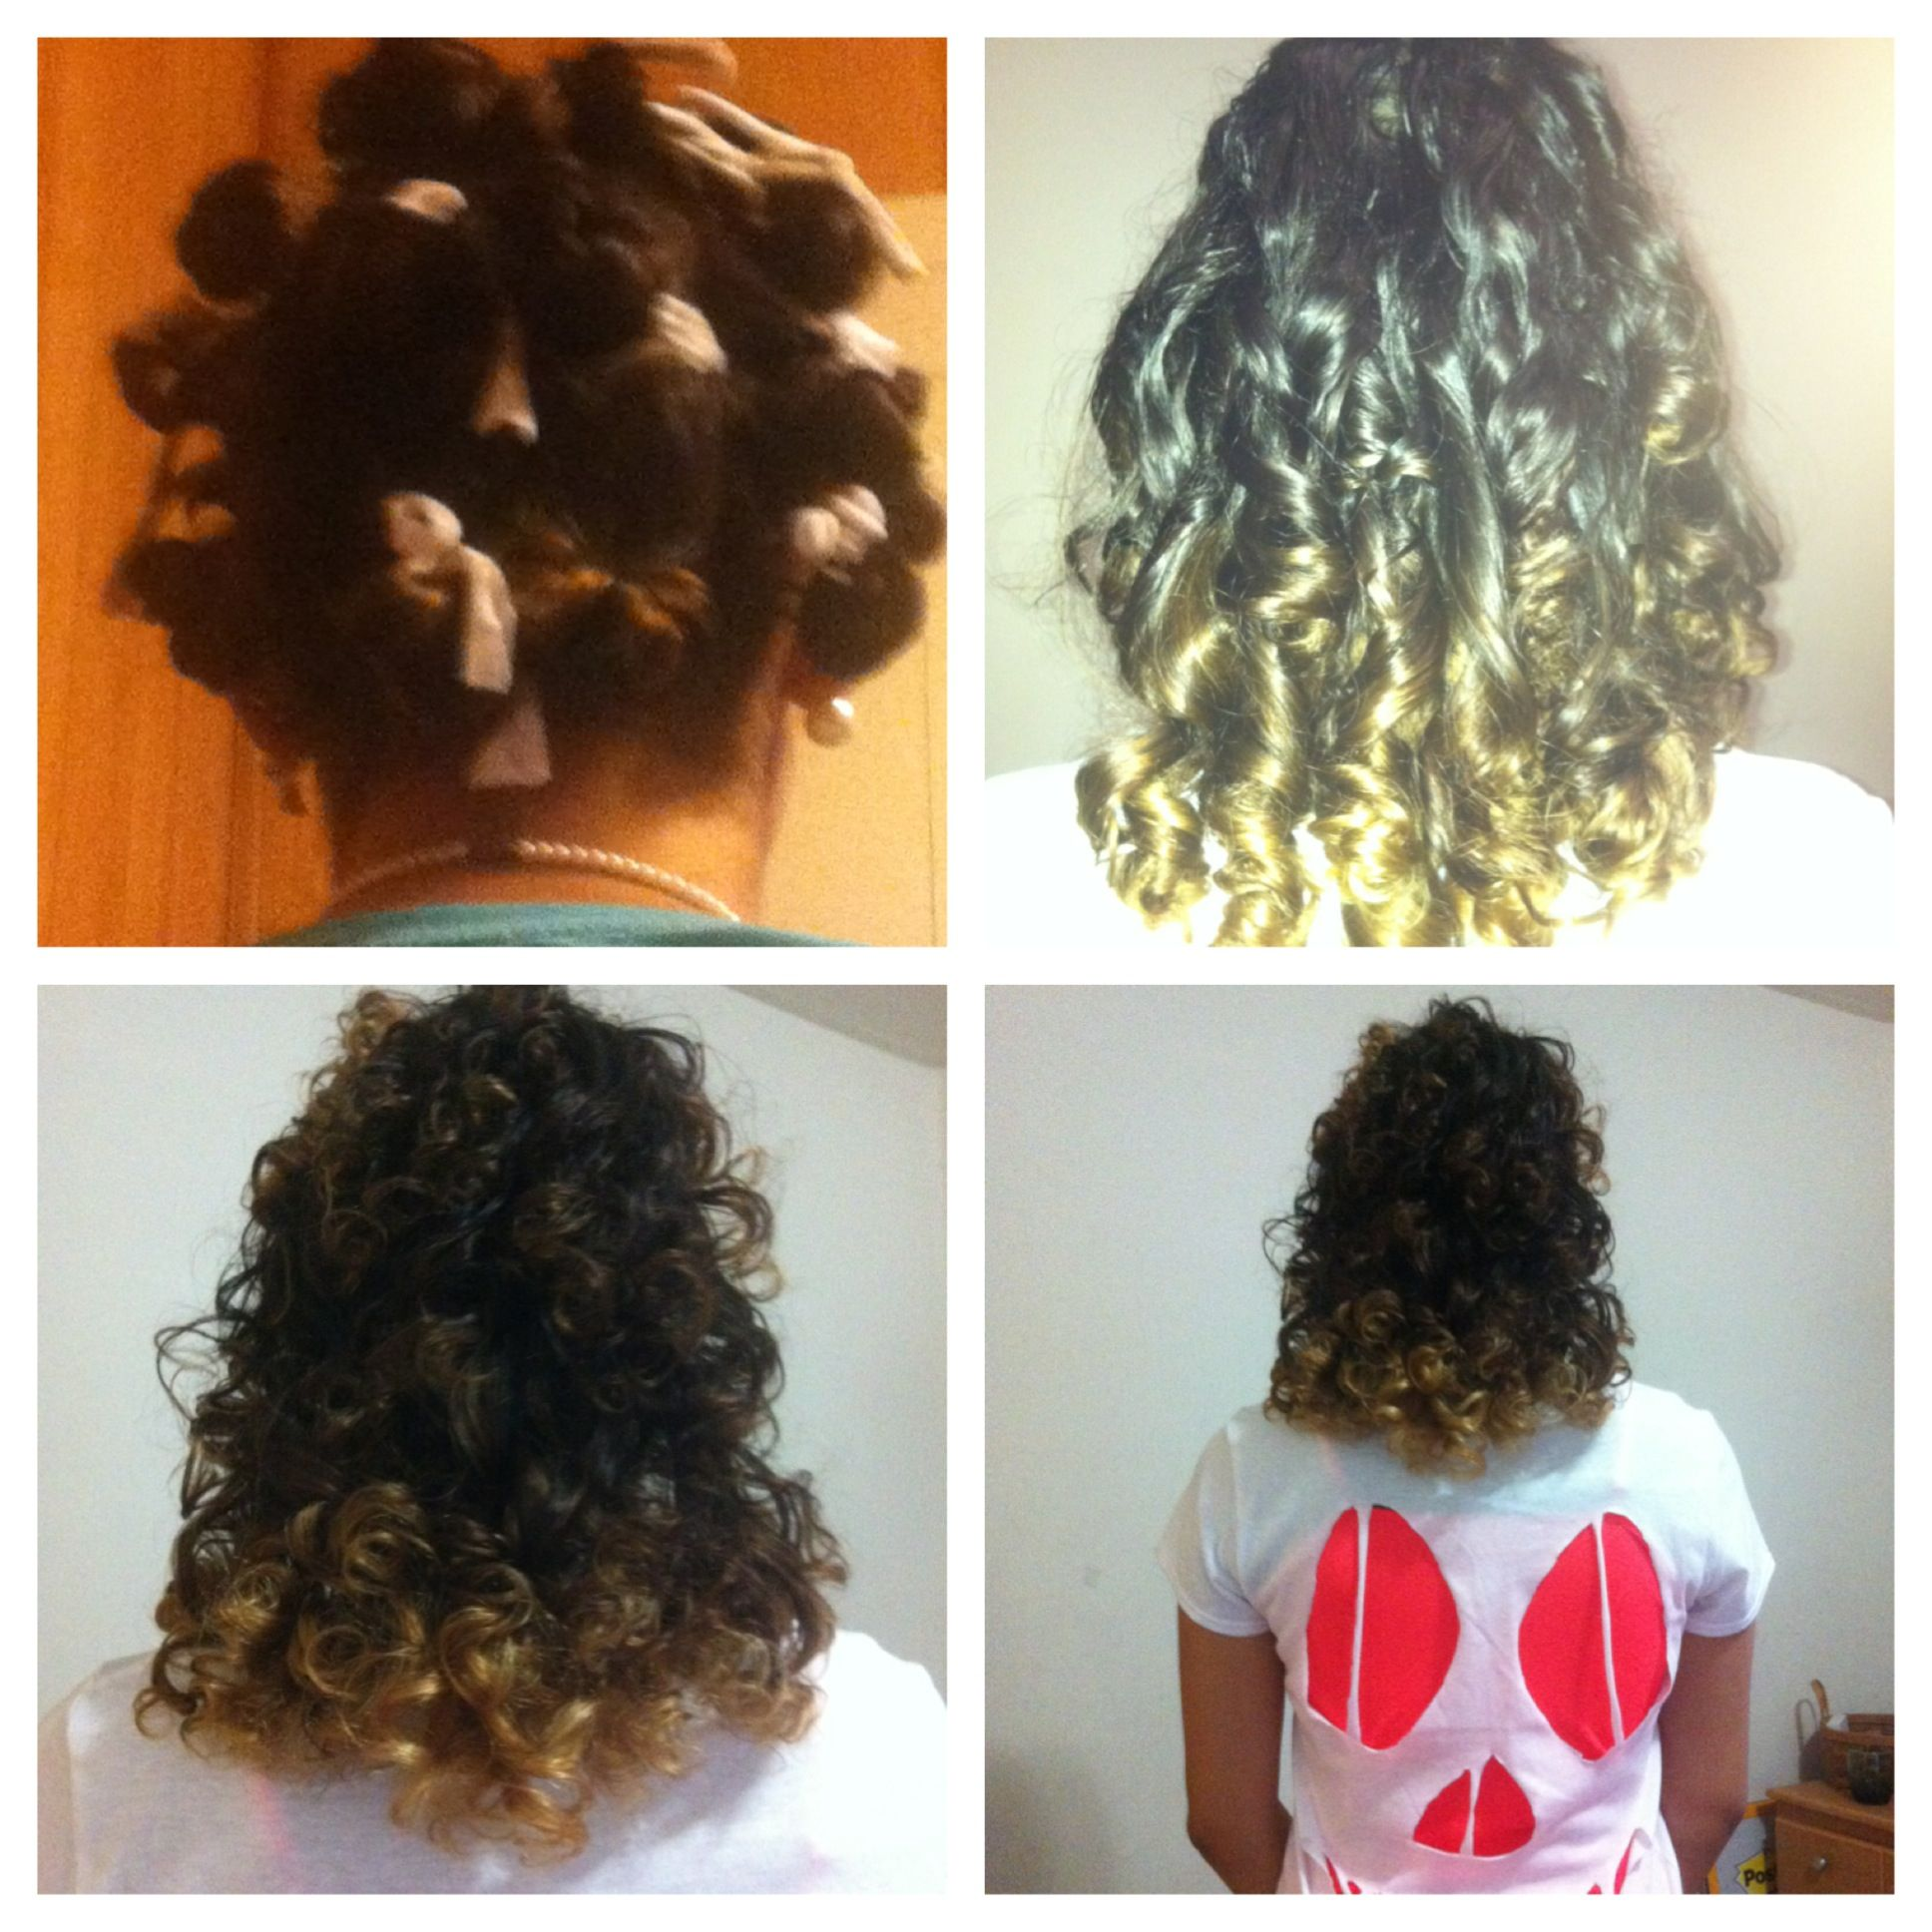 Easy Shirley Temple curls: 1- cut up old pantyhose in strips. 2- take small sections of hair and start at the tips of hair wrapping it around strip. 3- tie it. 4-sleep on it. 5-untie each strip and shake your head back and forth (don't run fingers through, it'll frizz). The End!